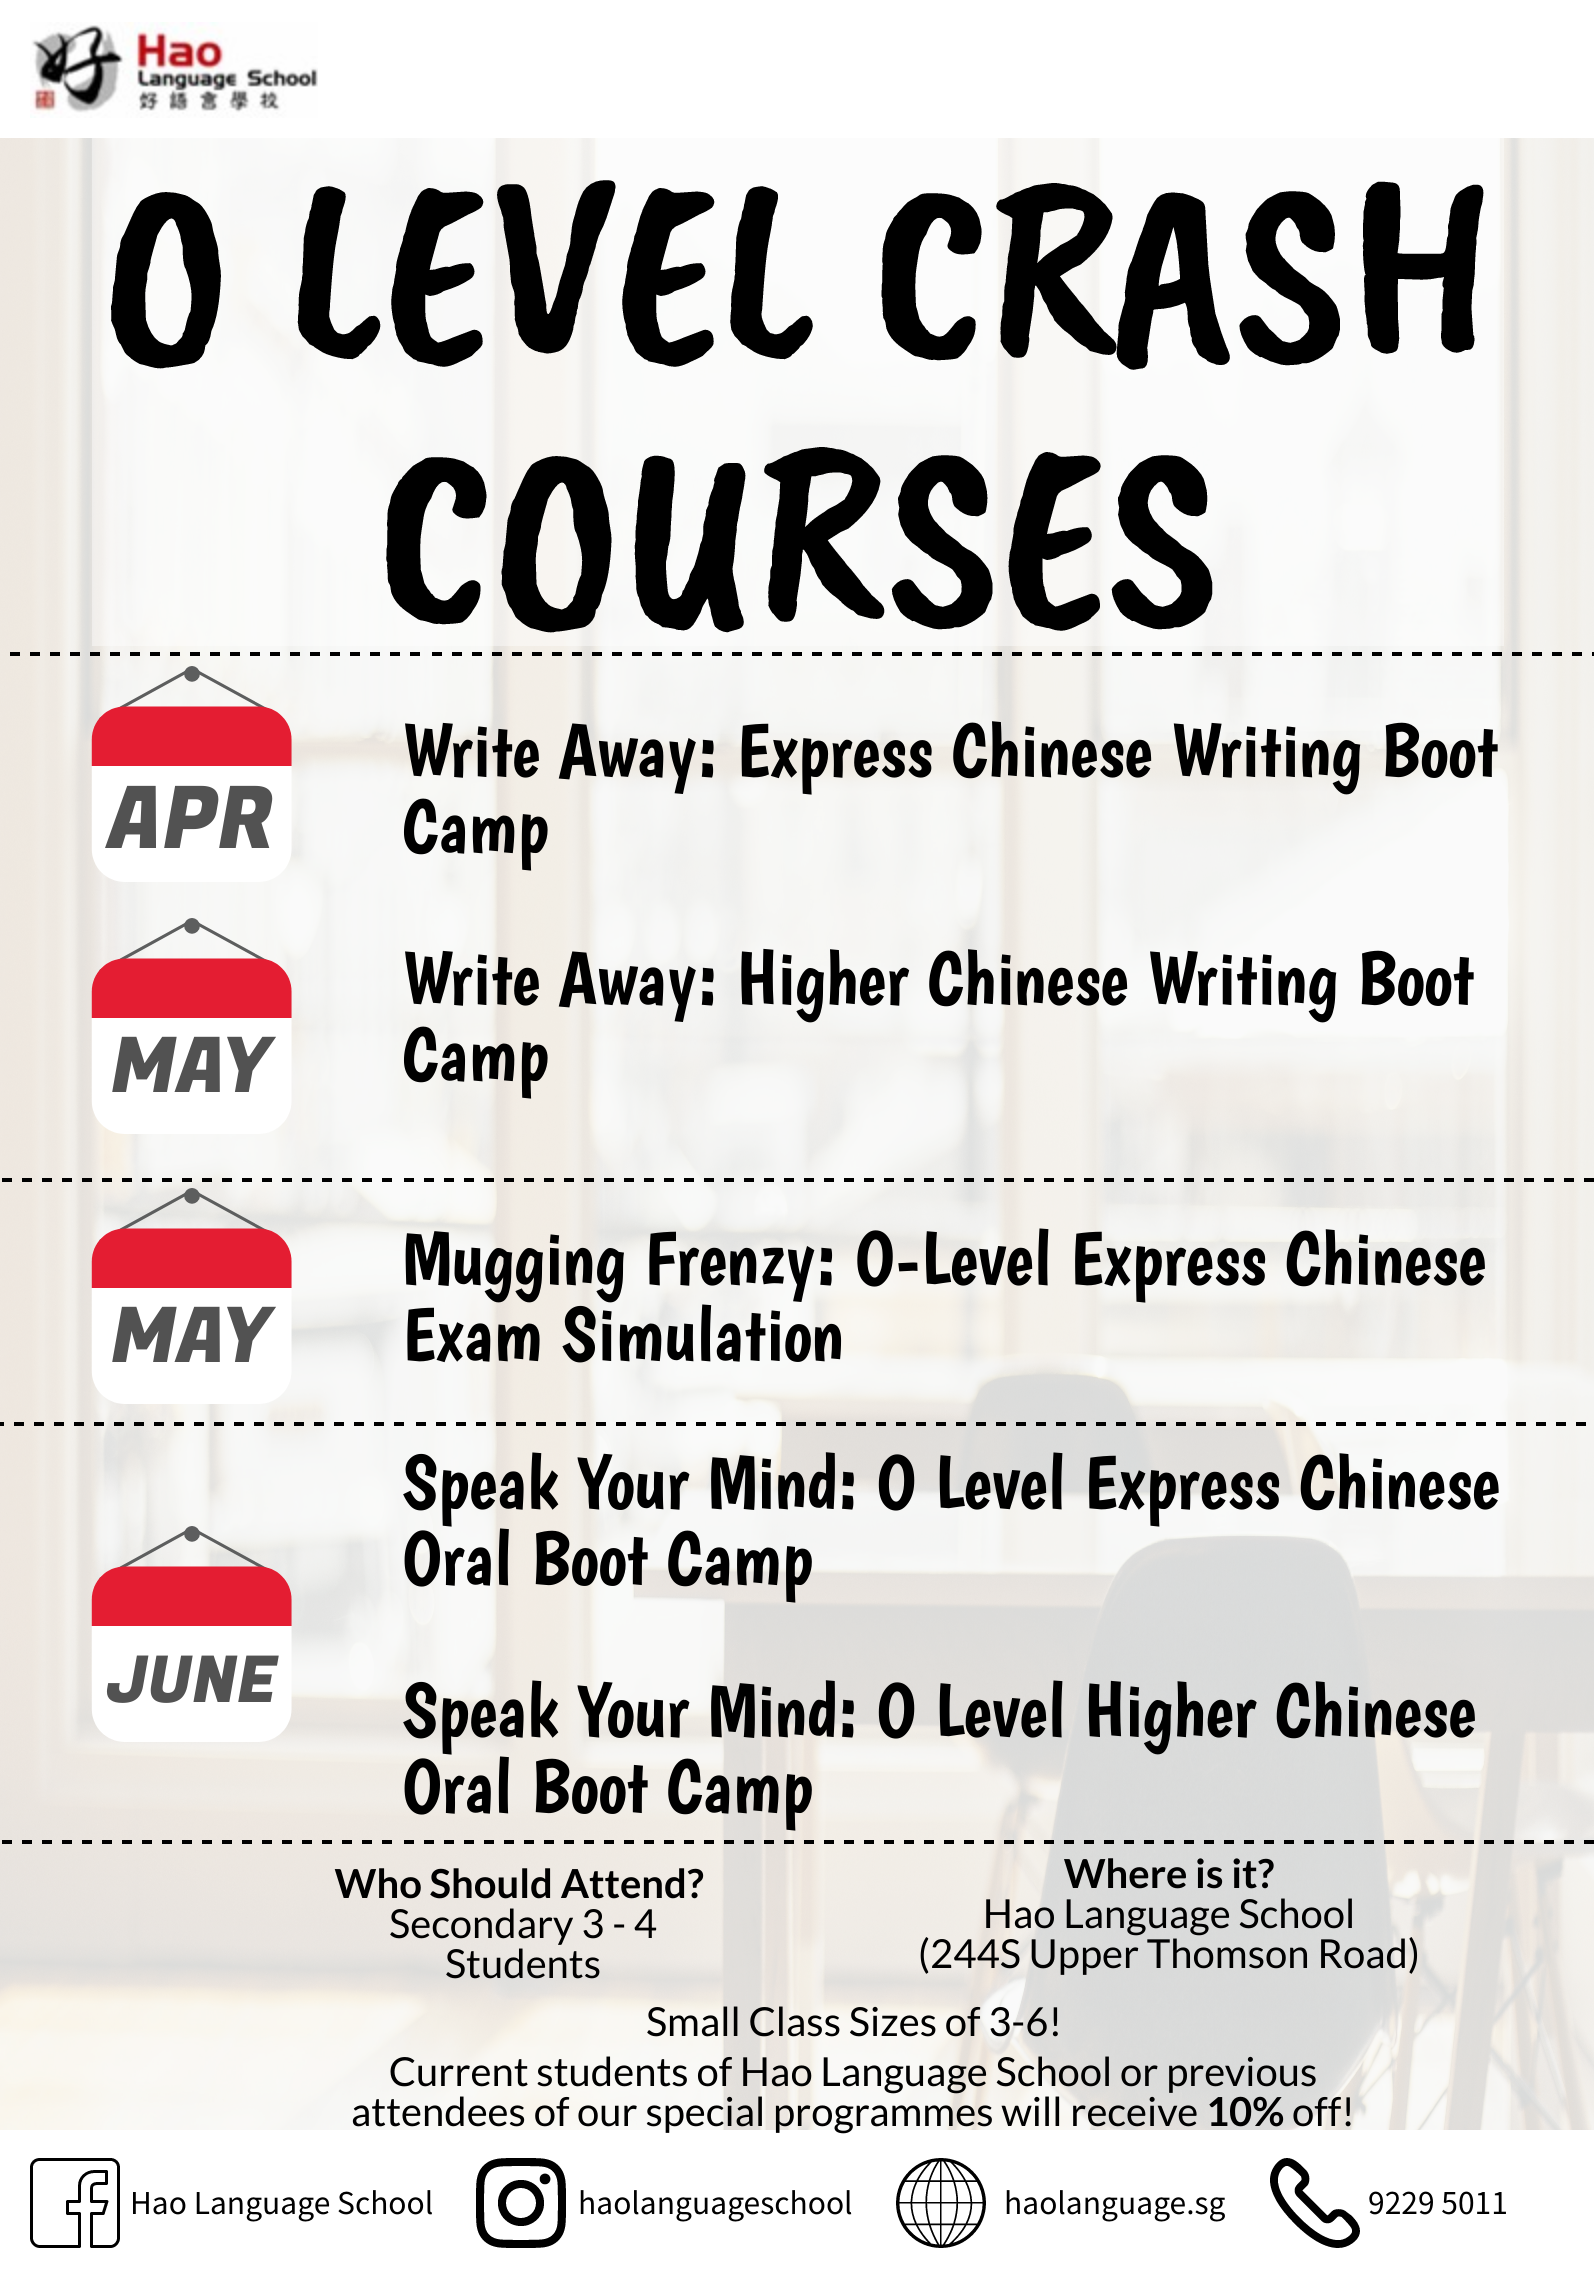 O Level Chinese Crash Courses Flyer